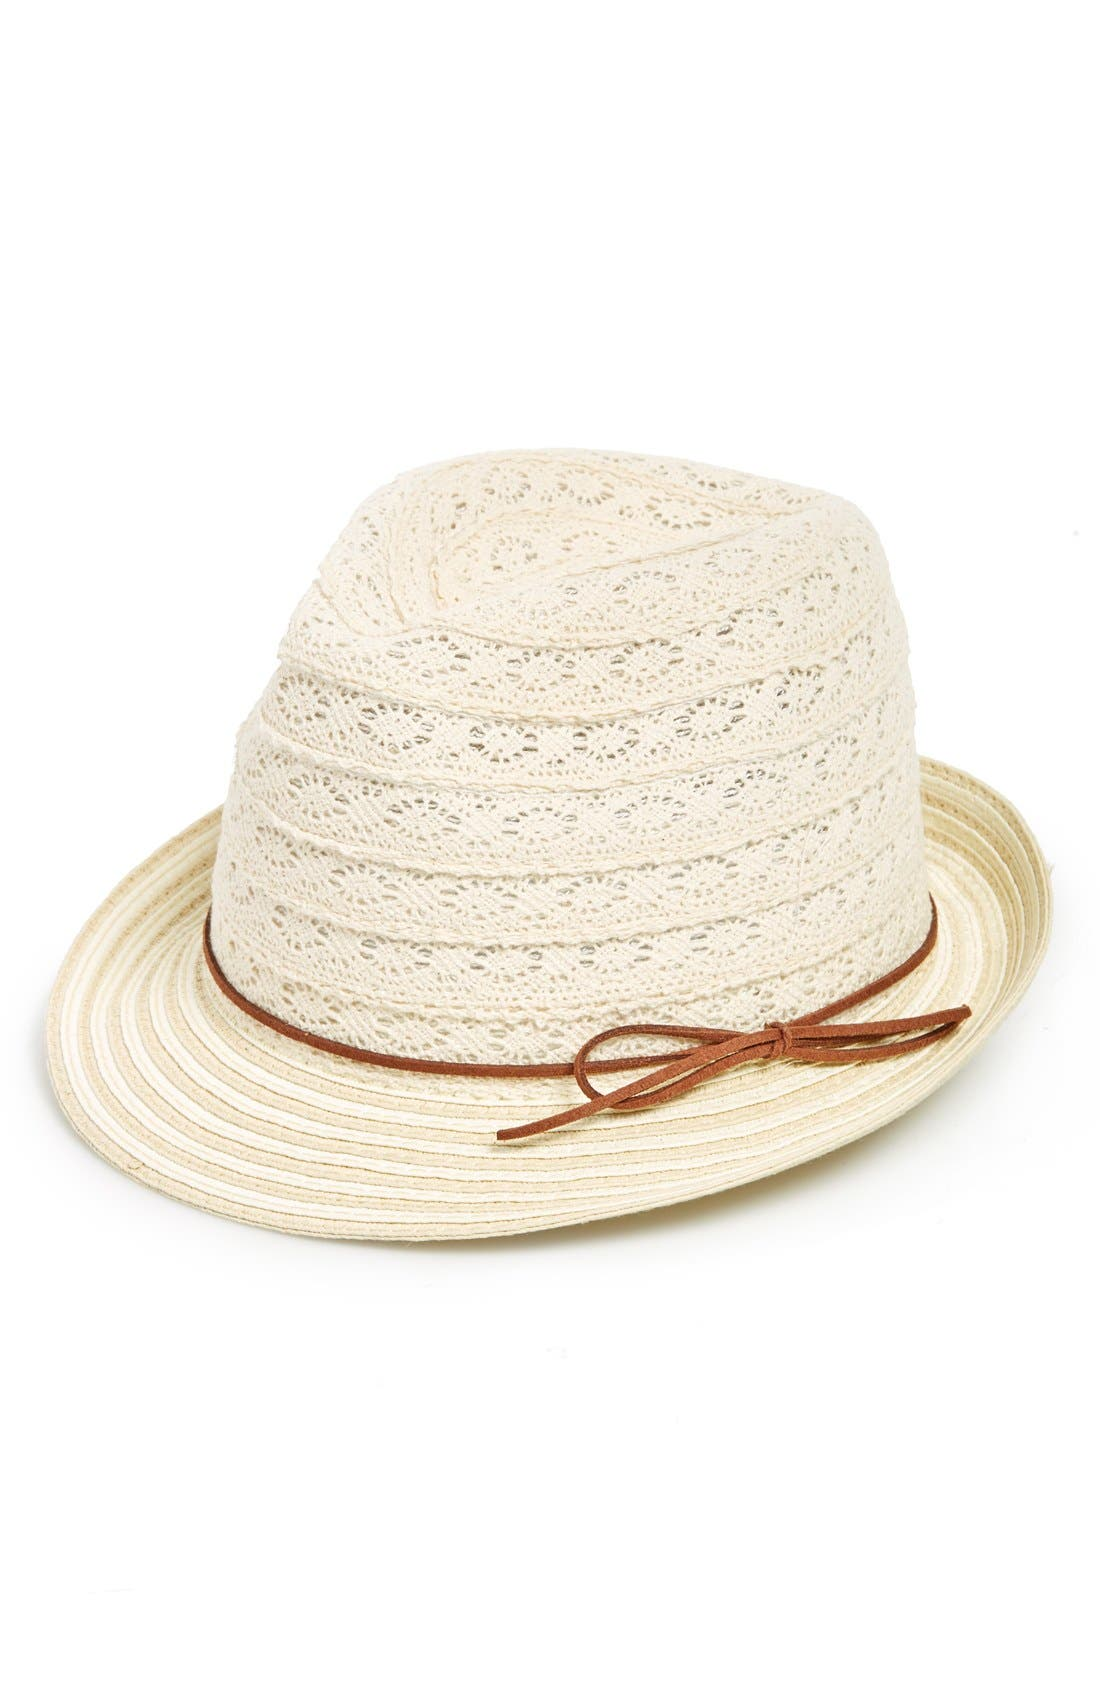 Main Image - Phase 3 Lace & Straw Trilby Hat